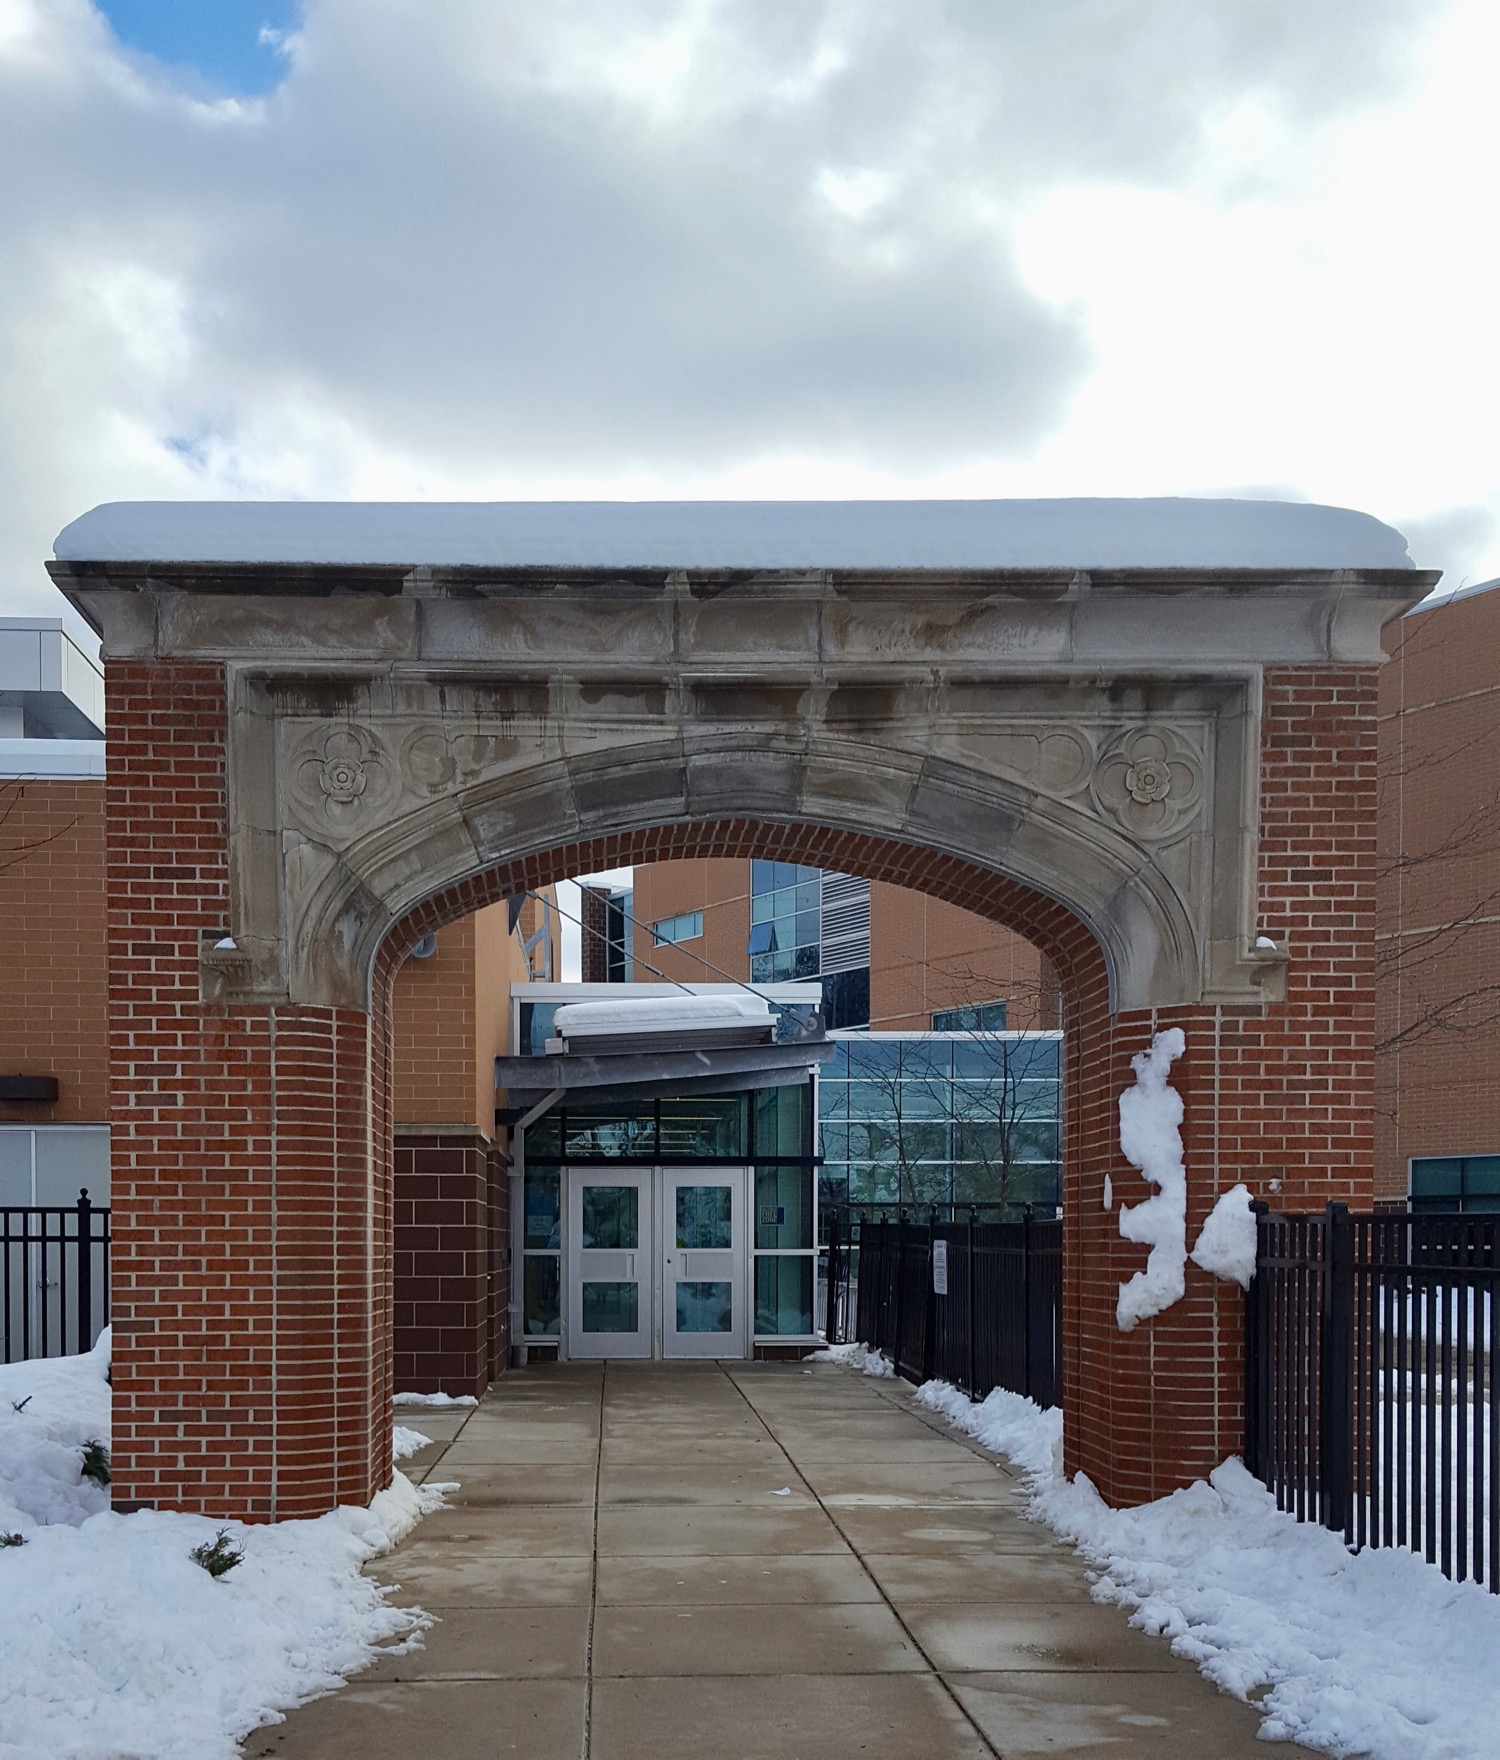 ORIGINAL ARCH IS ALL THAT REMAINS OF THE OLD MODIFIED GOTHIC STYLE . DICKINSON SCHOOL WAS REPLACED BY A NEW BUILDING.